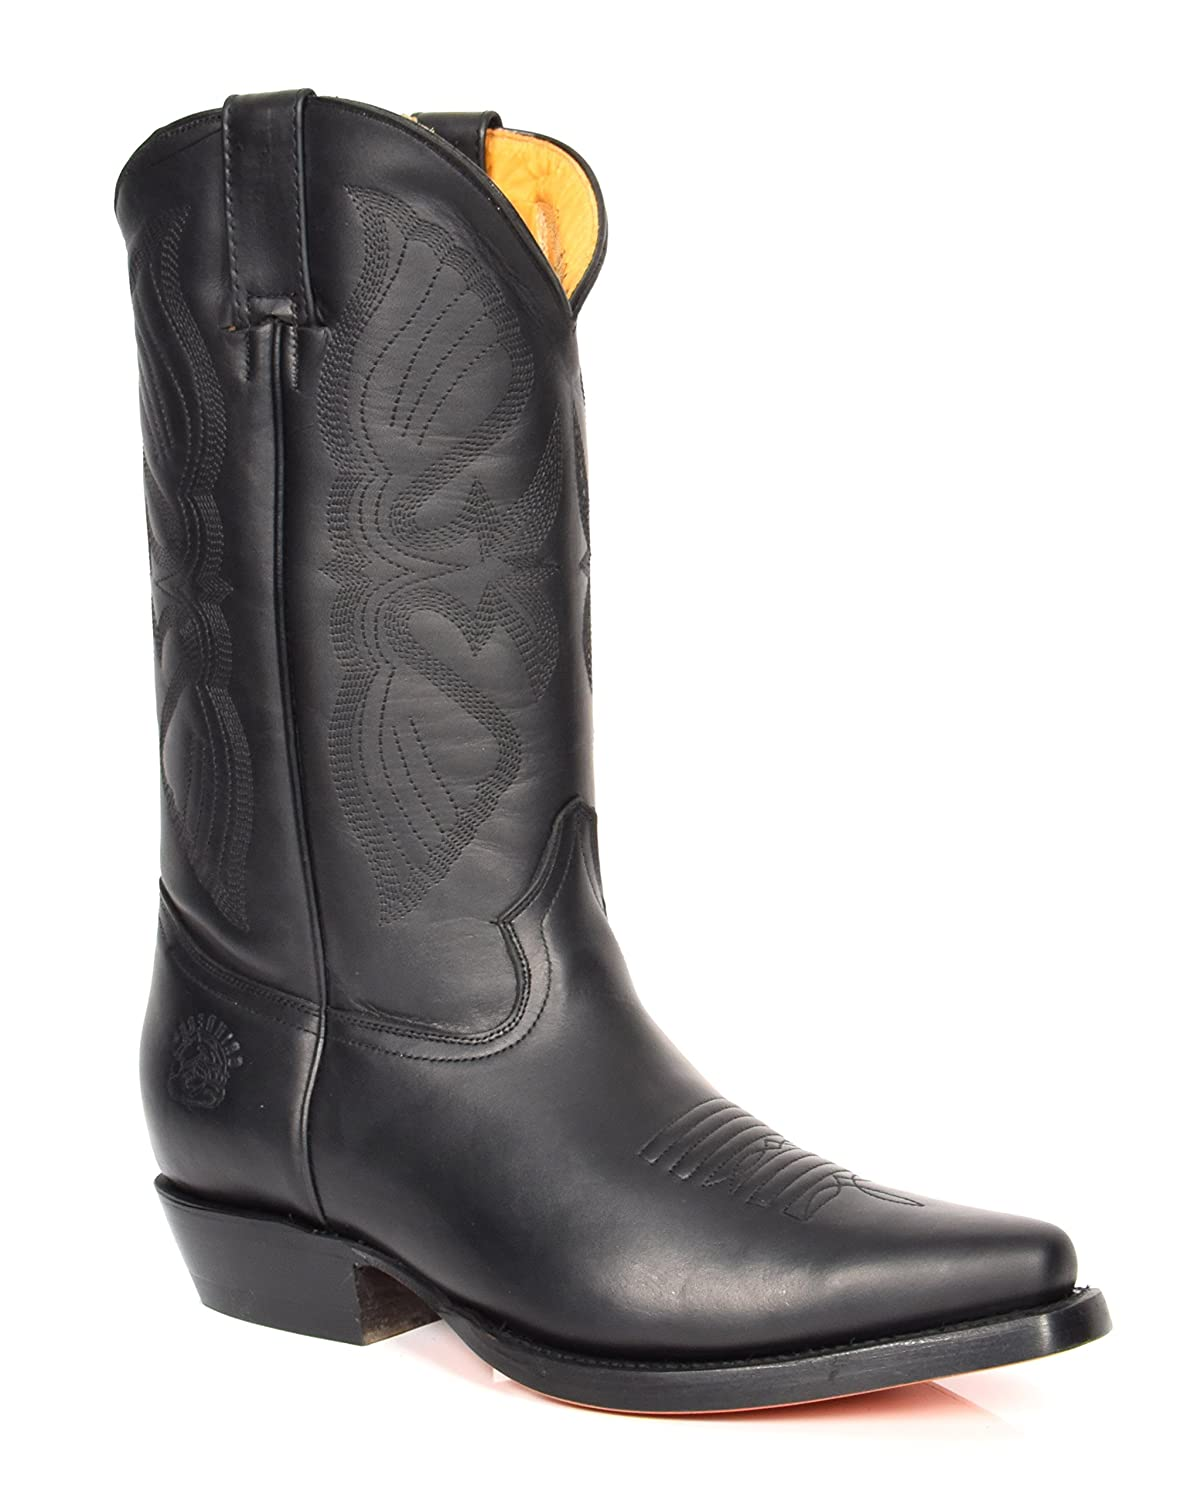 House of Leather Leder Cowboy Stiefel überstreifen Spitzer